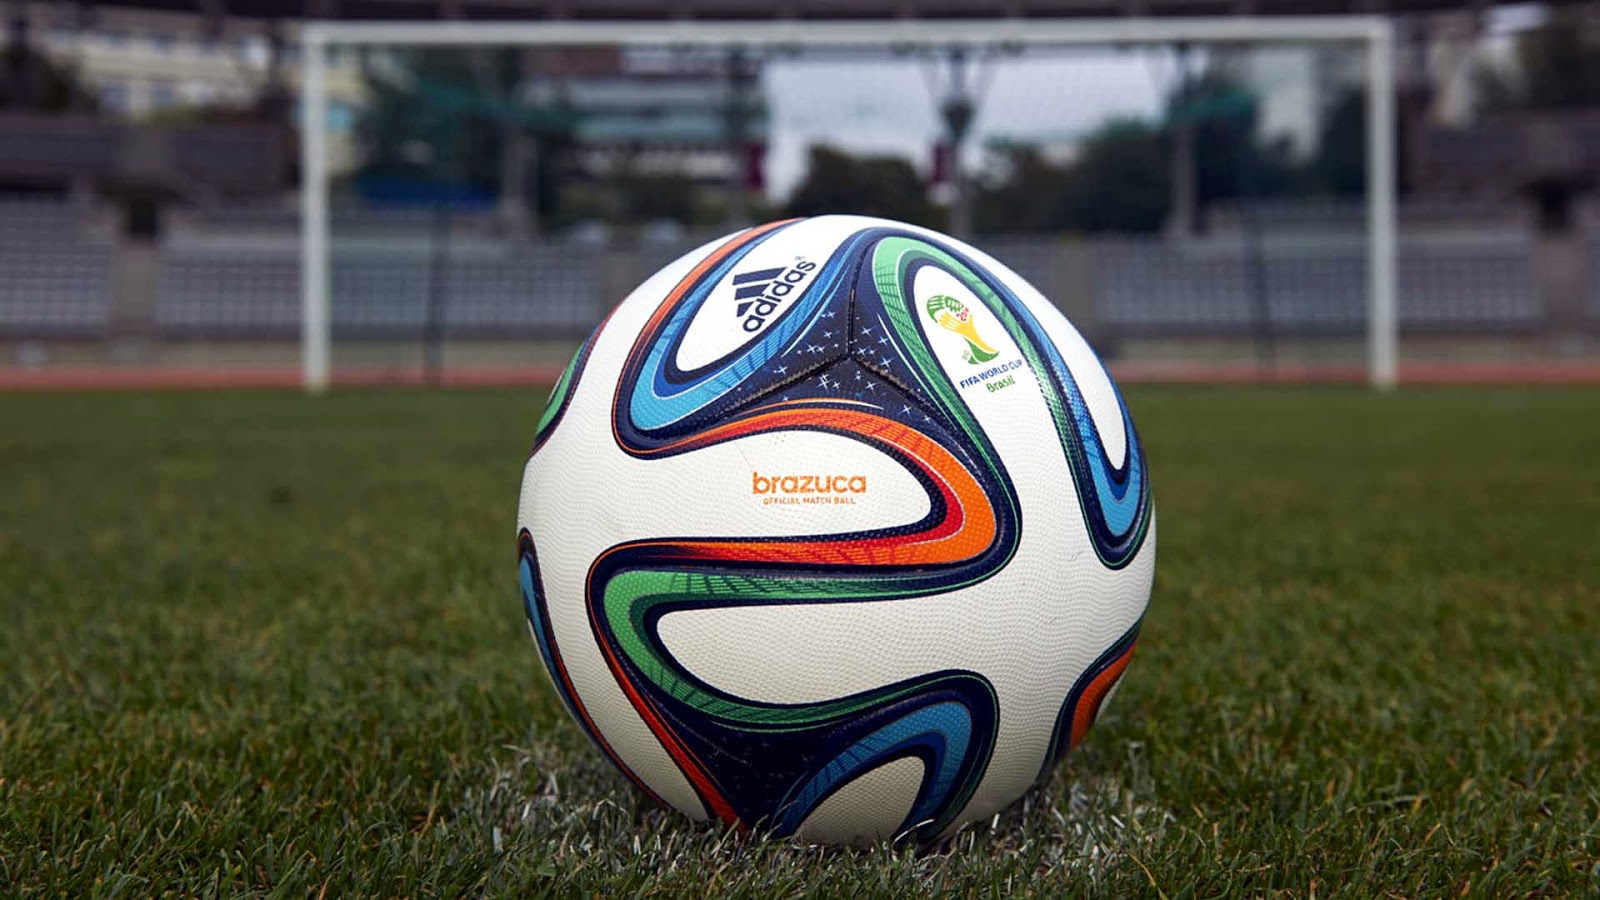 making of brazuce official ball of fifa world cup 2014